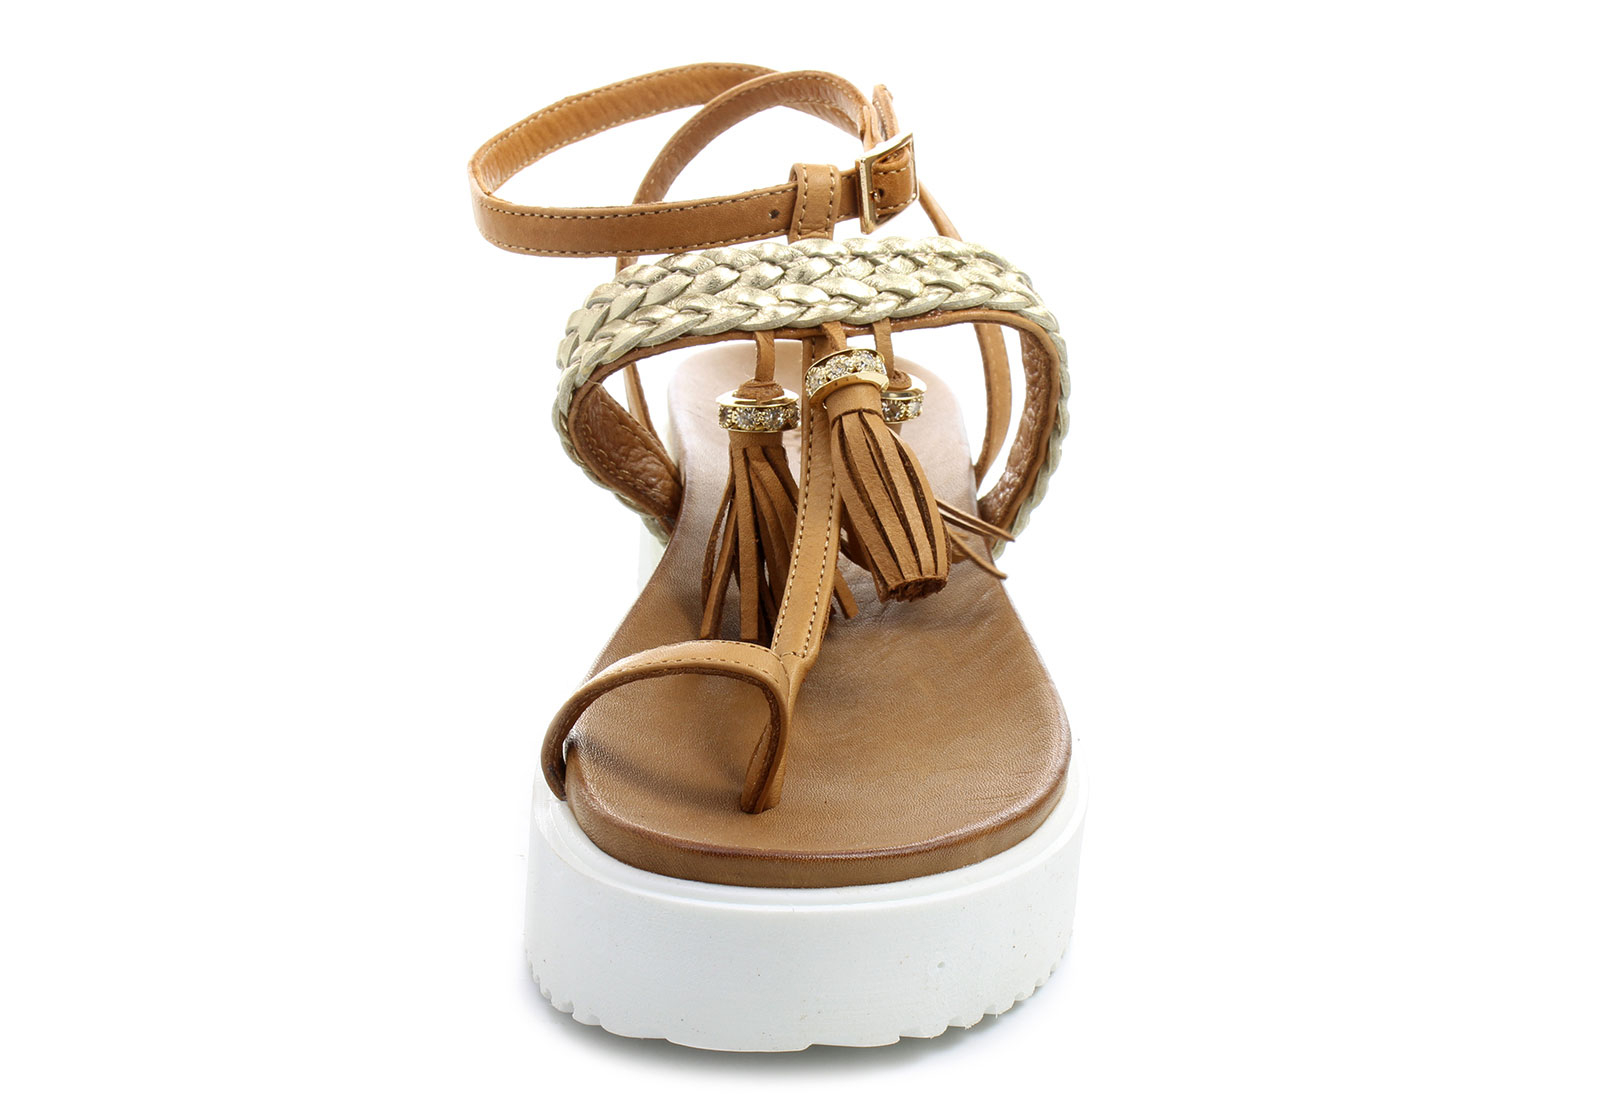 Inuovo Sandals 6247 6247 Coc Online Shop For